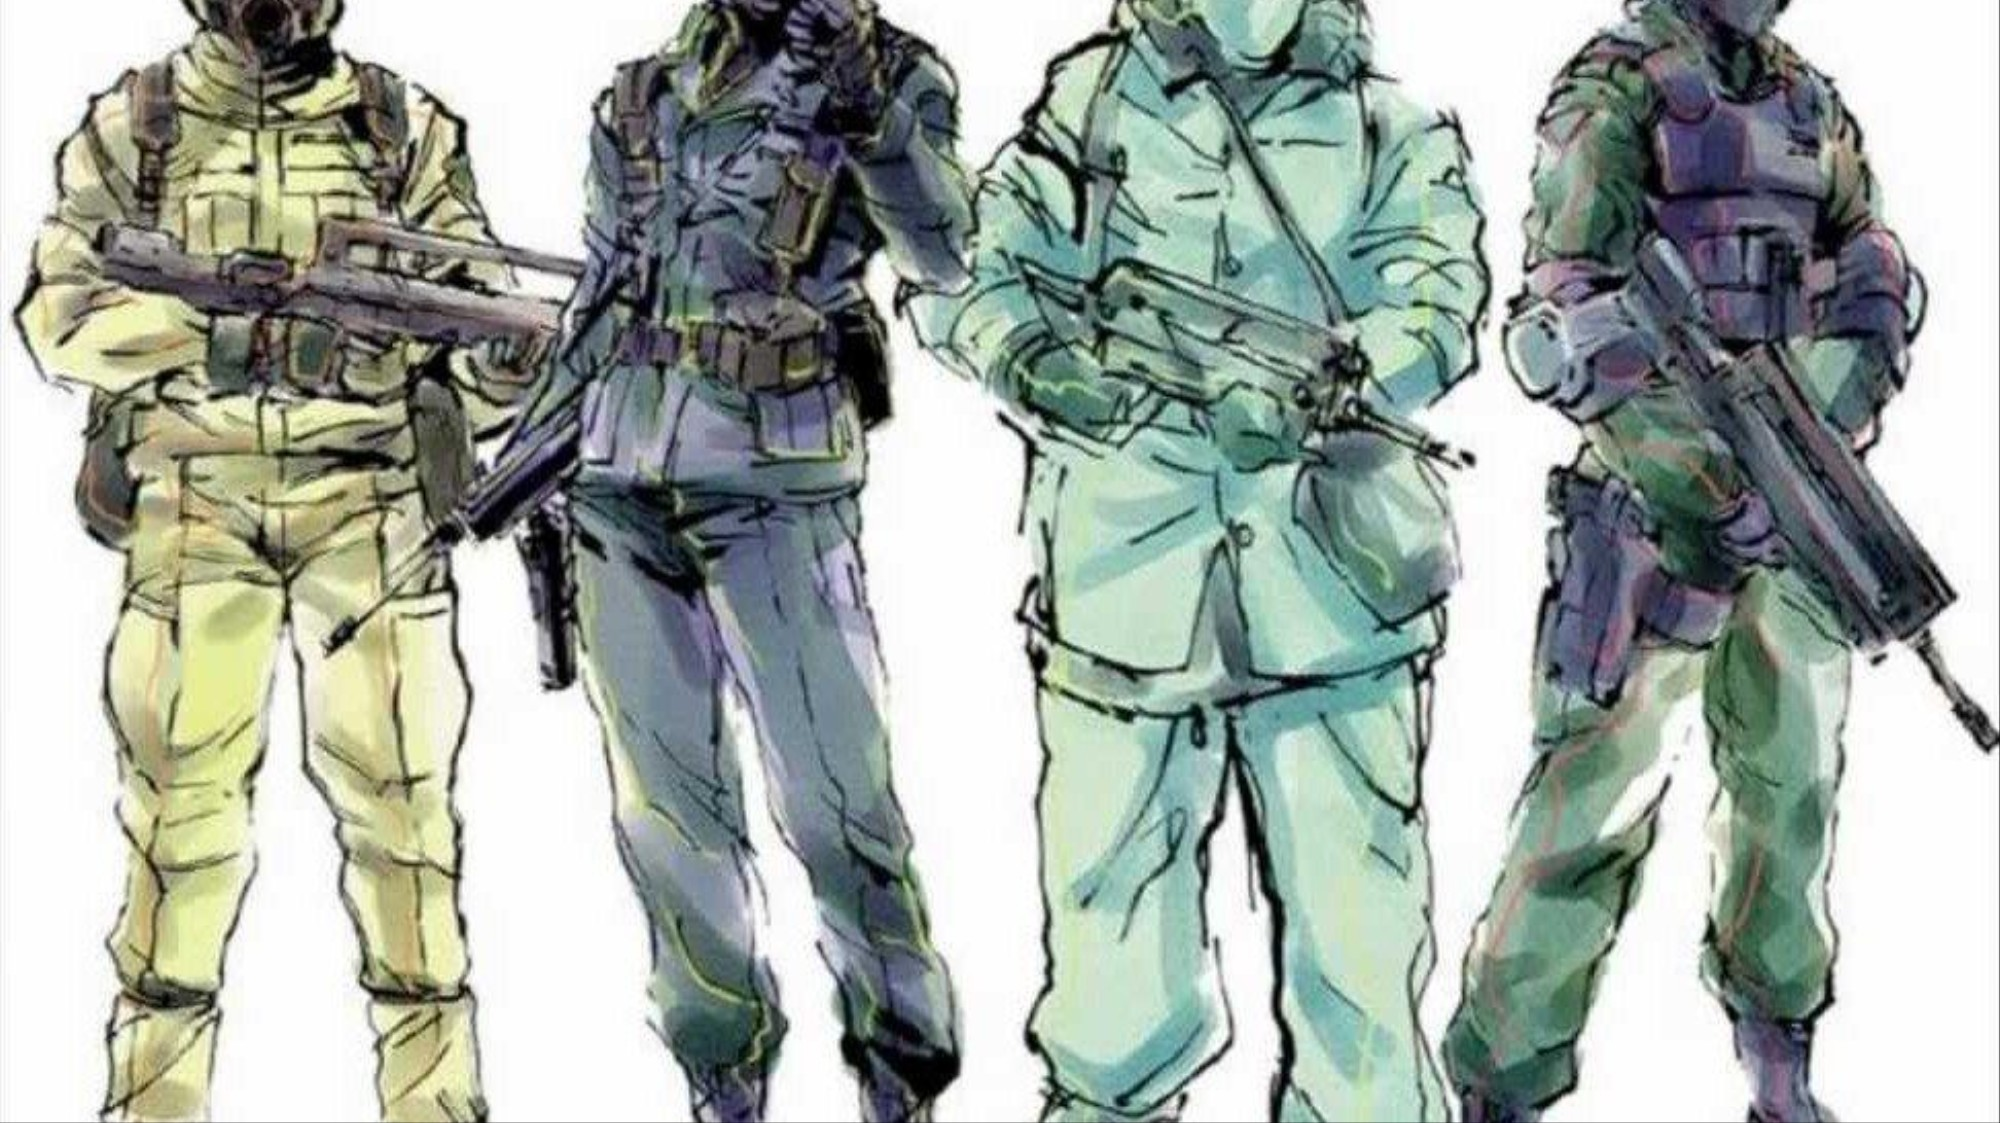 I Asked a Biological Weapons Expert How Far-Fetched Metal Gear